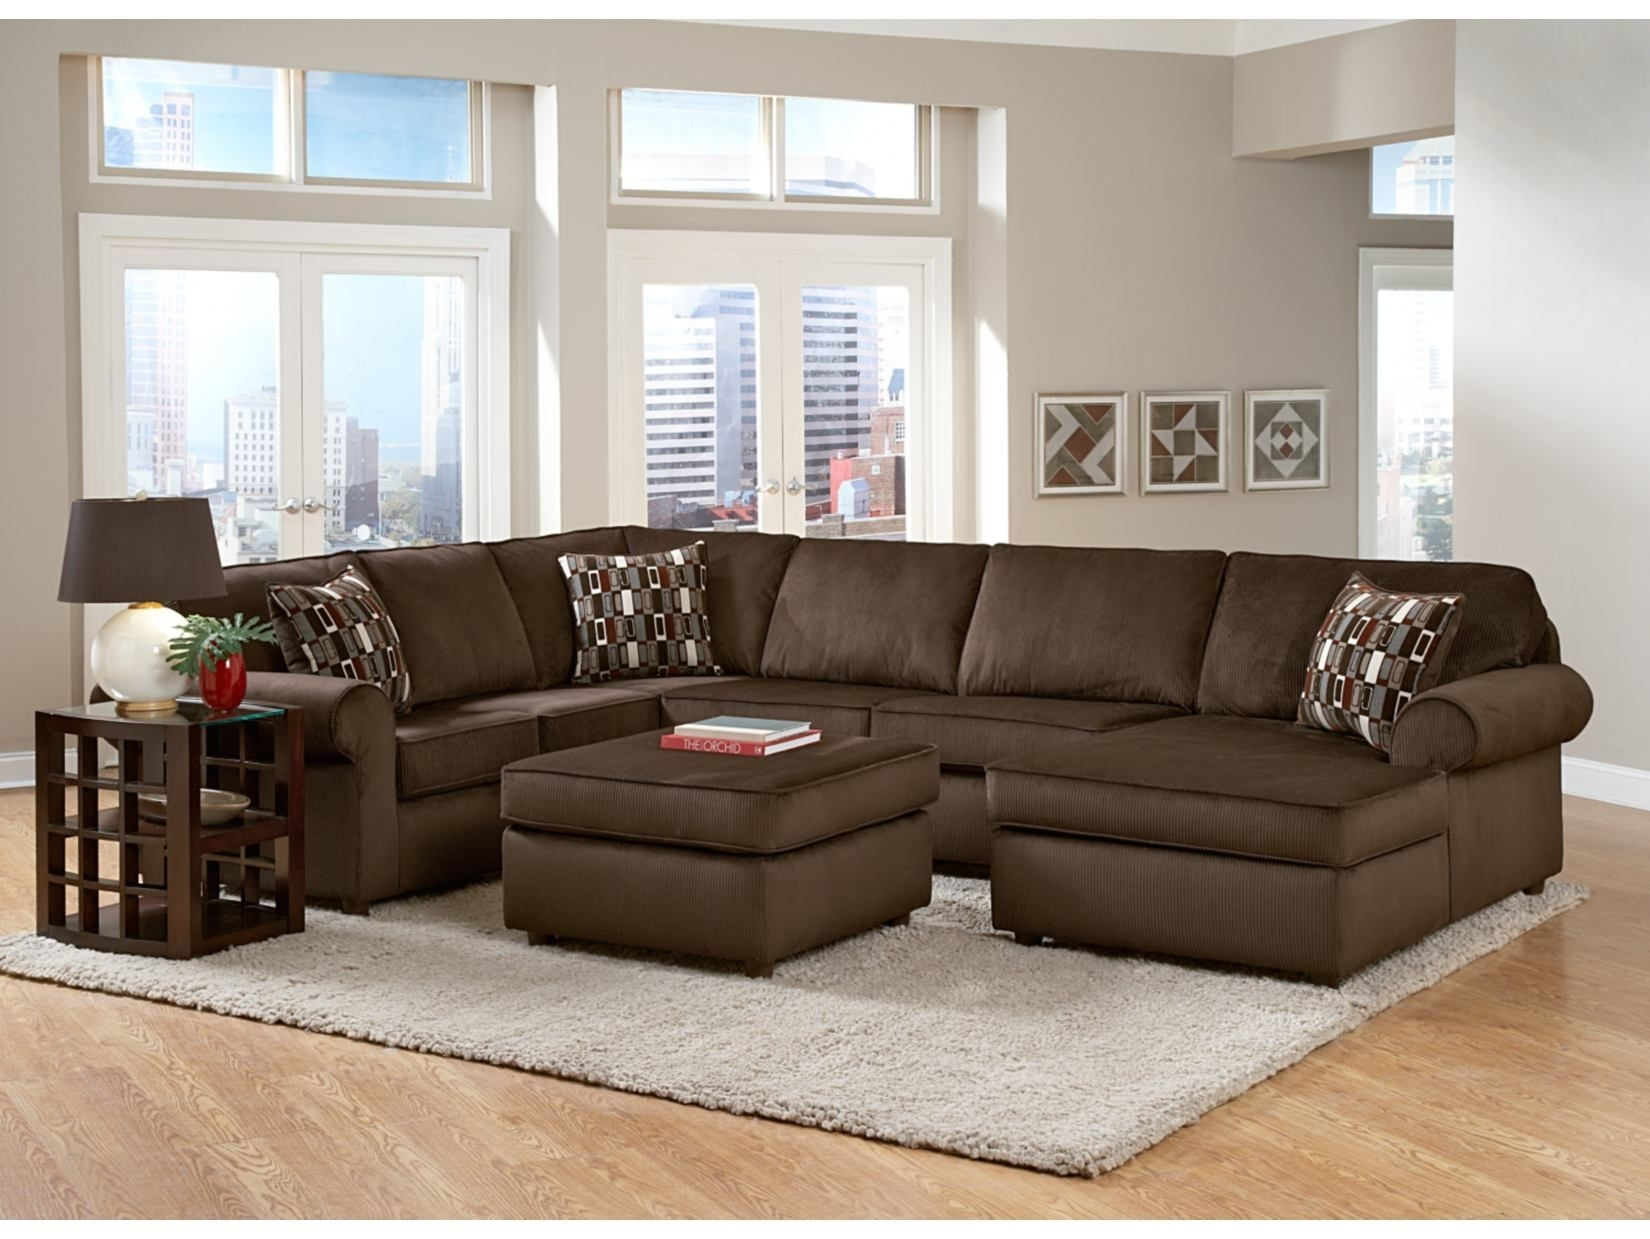 Monarch Chocolate 3 Pc Sectional – Value City Furniture | Value City In Karen 3 Piece Sectionals (View 8 of 25)